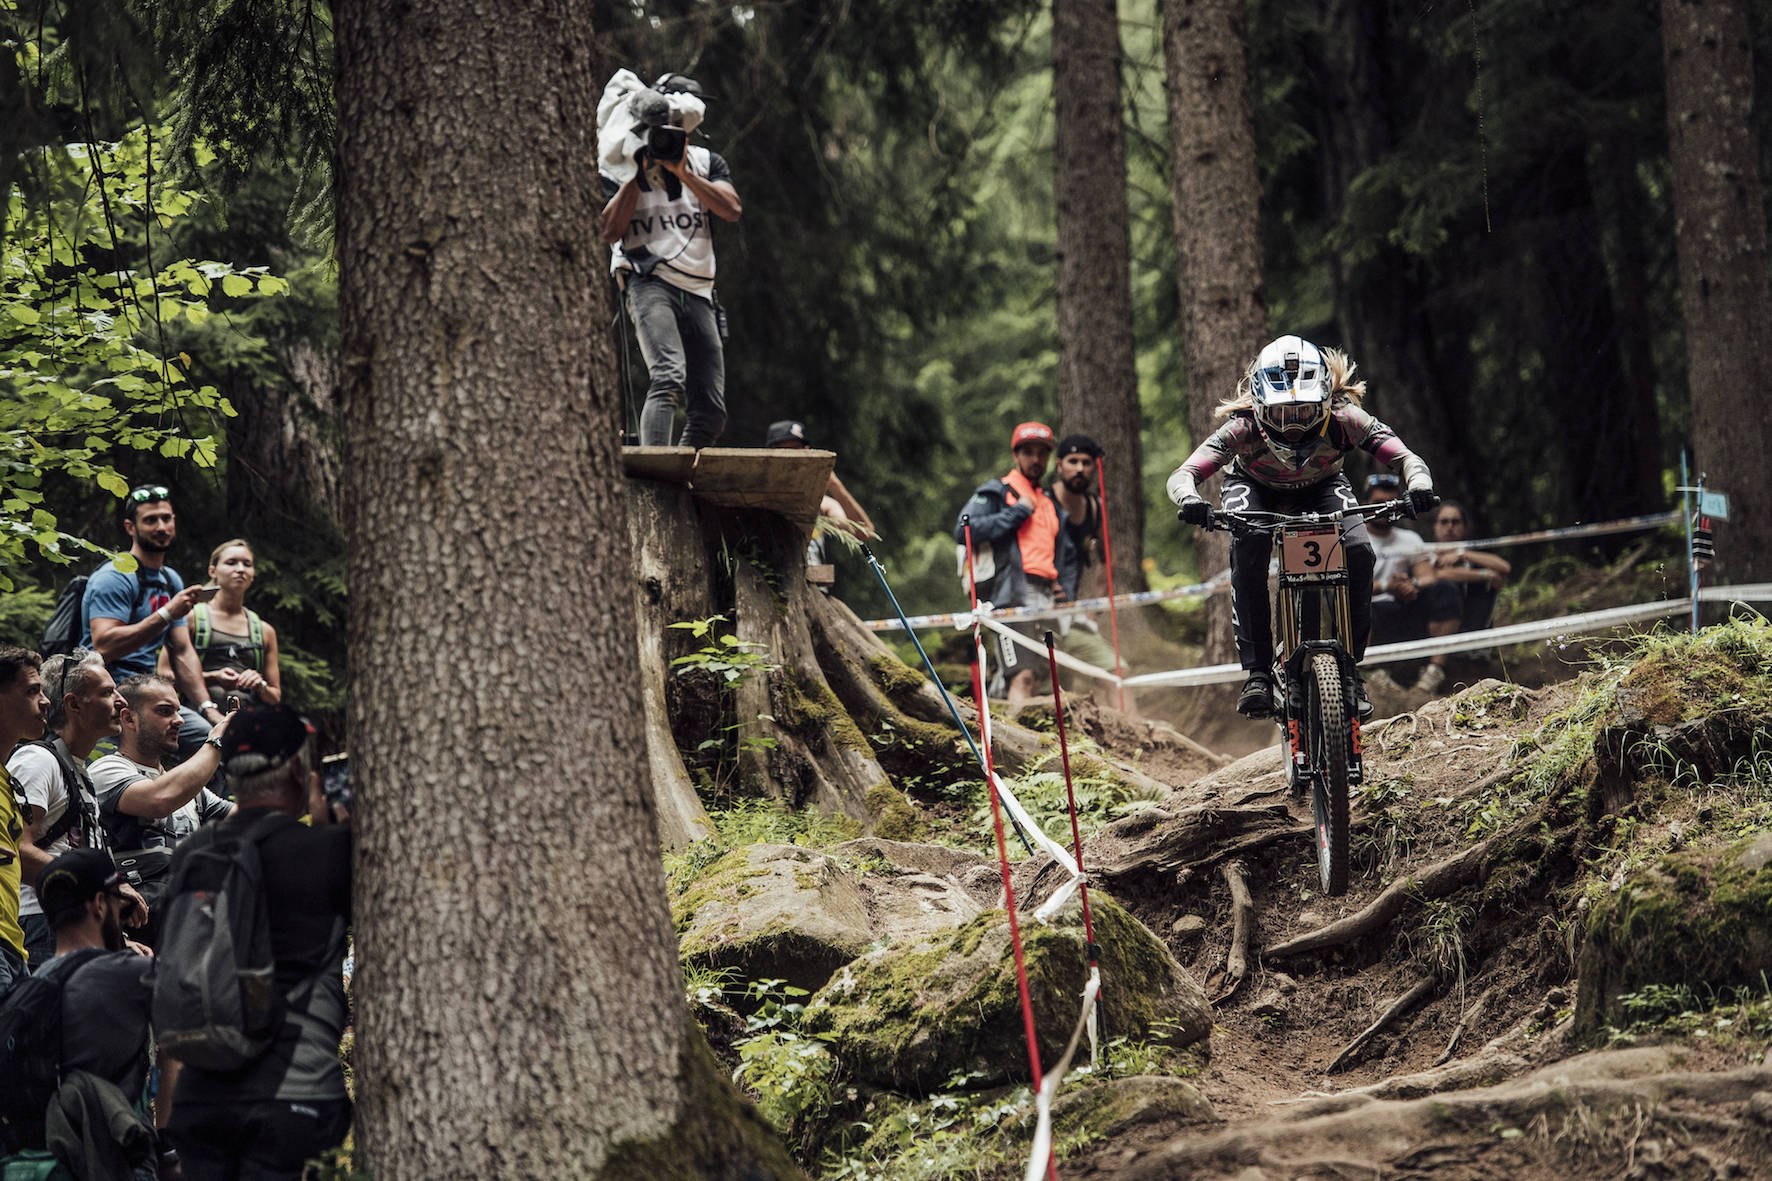 Tahnée Seagrave racing her way to victory at the 2018 Val di Sole Downhill MTB World Cup